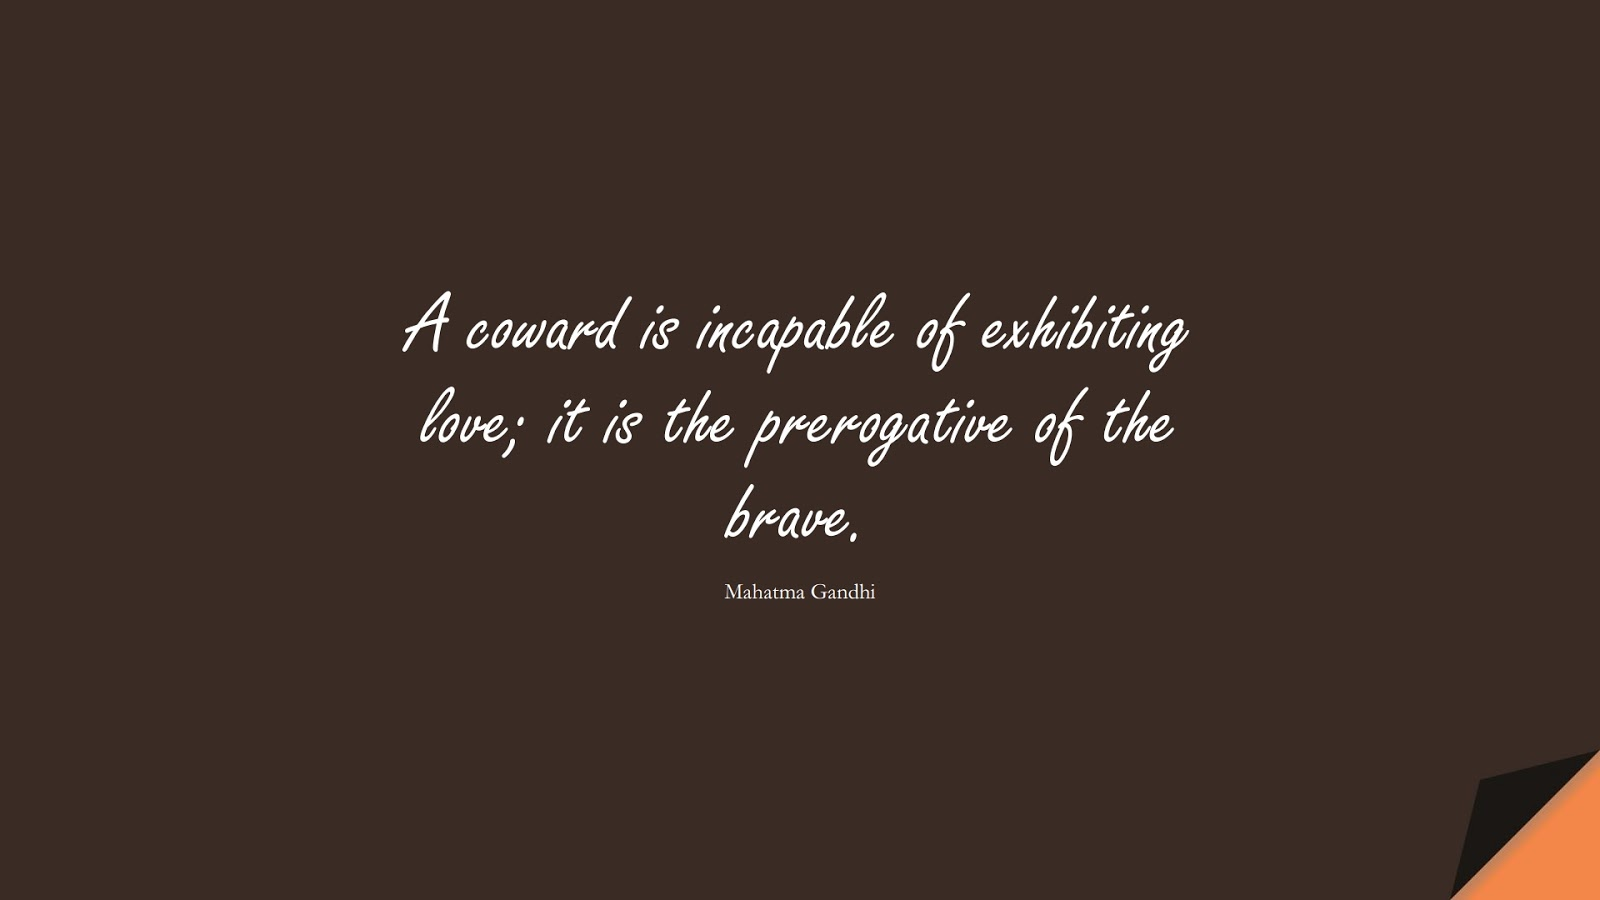 A coward is incapable of exhibiting love; it is the prerogative of the brave. (Mahatma Gandhi);  #CourageQuotes